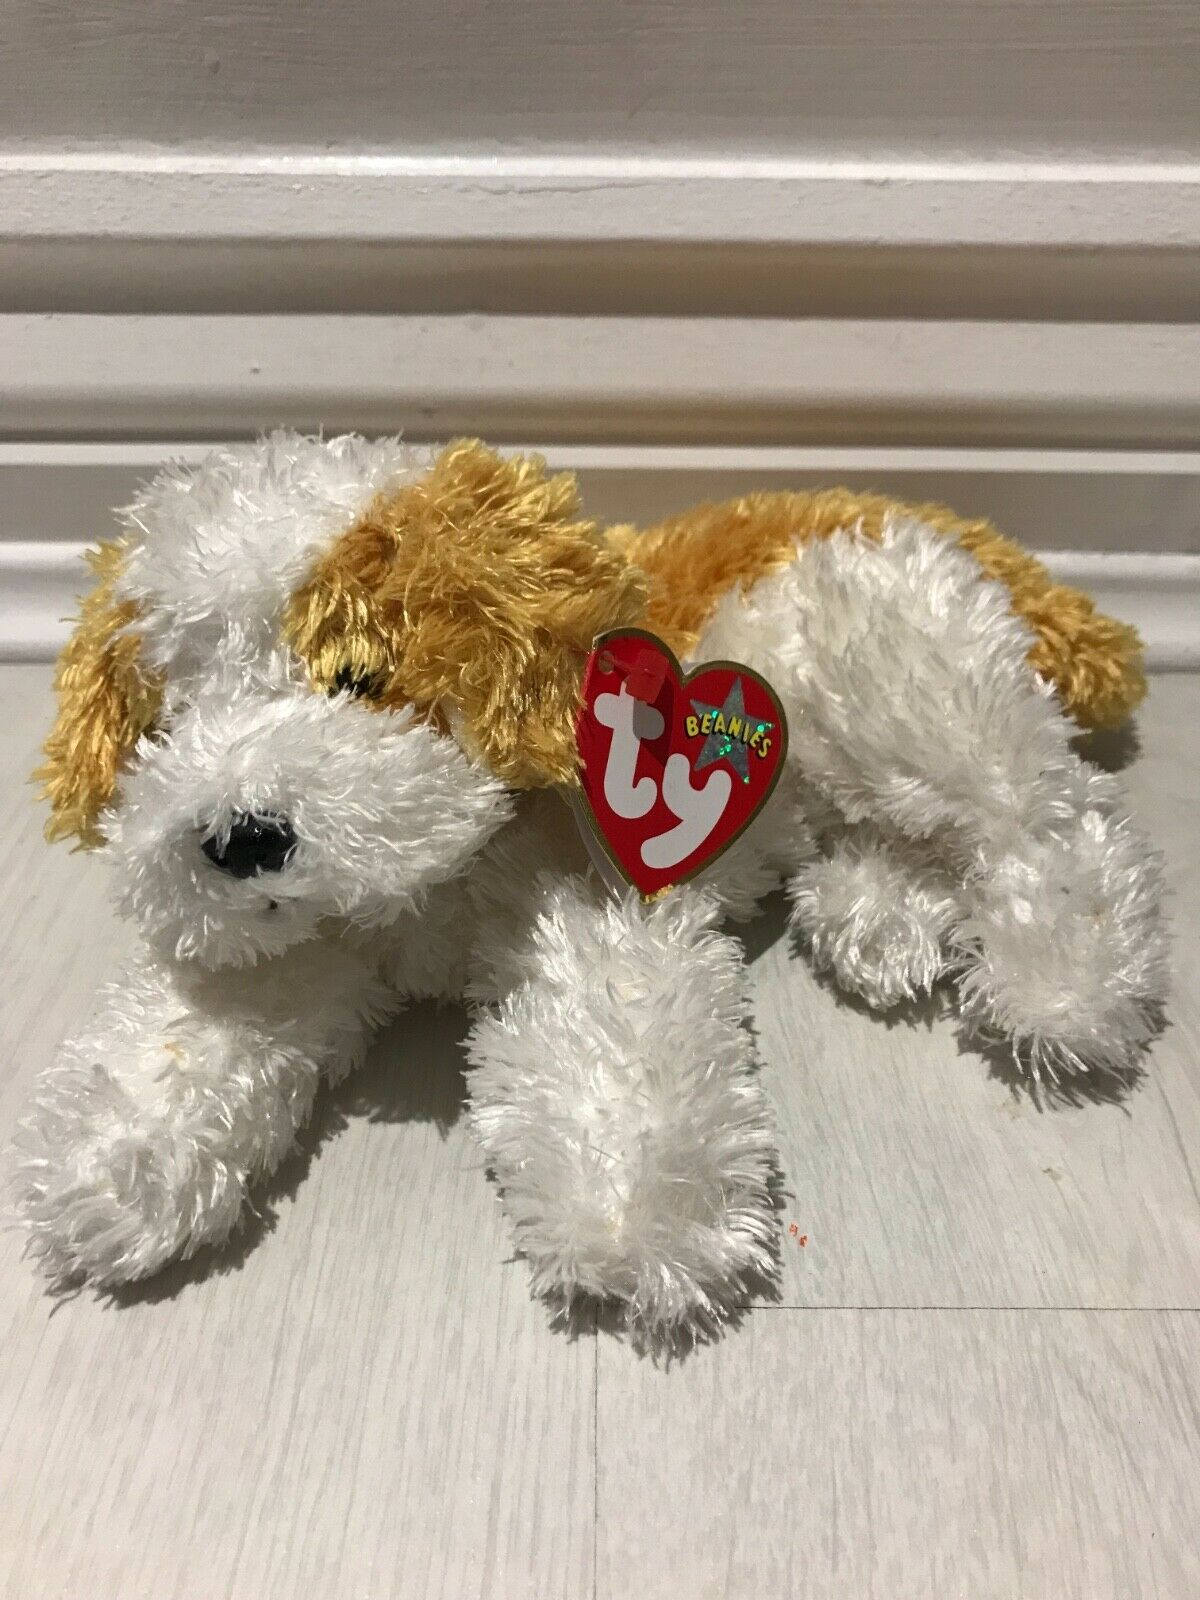 TY Beanie Baby Rare with errors - Darling. Excellent condition.